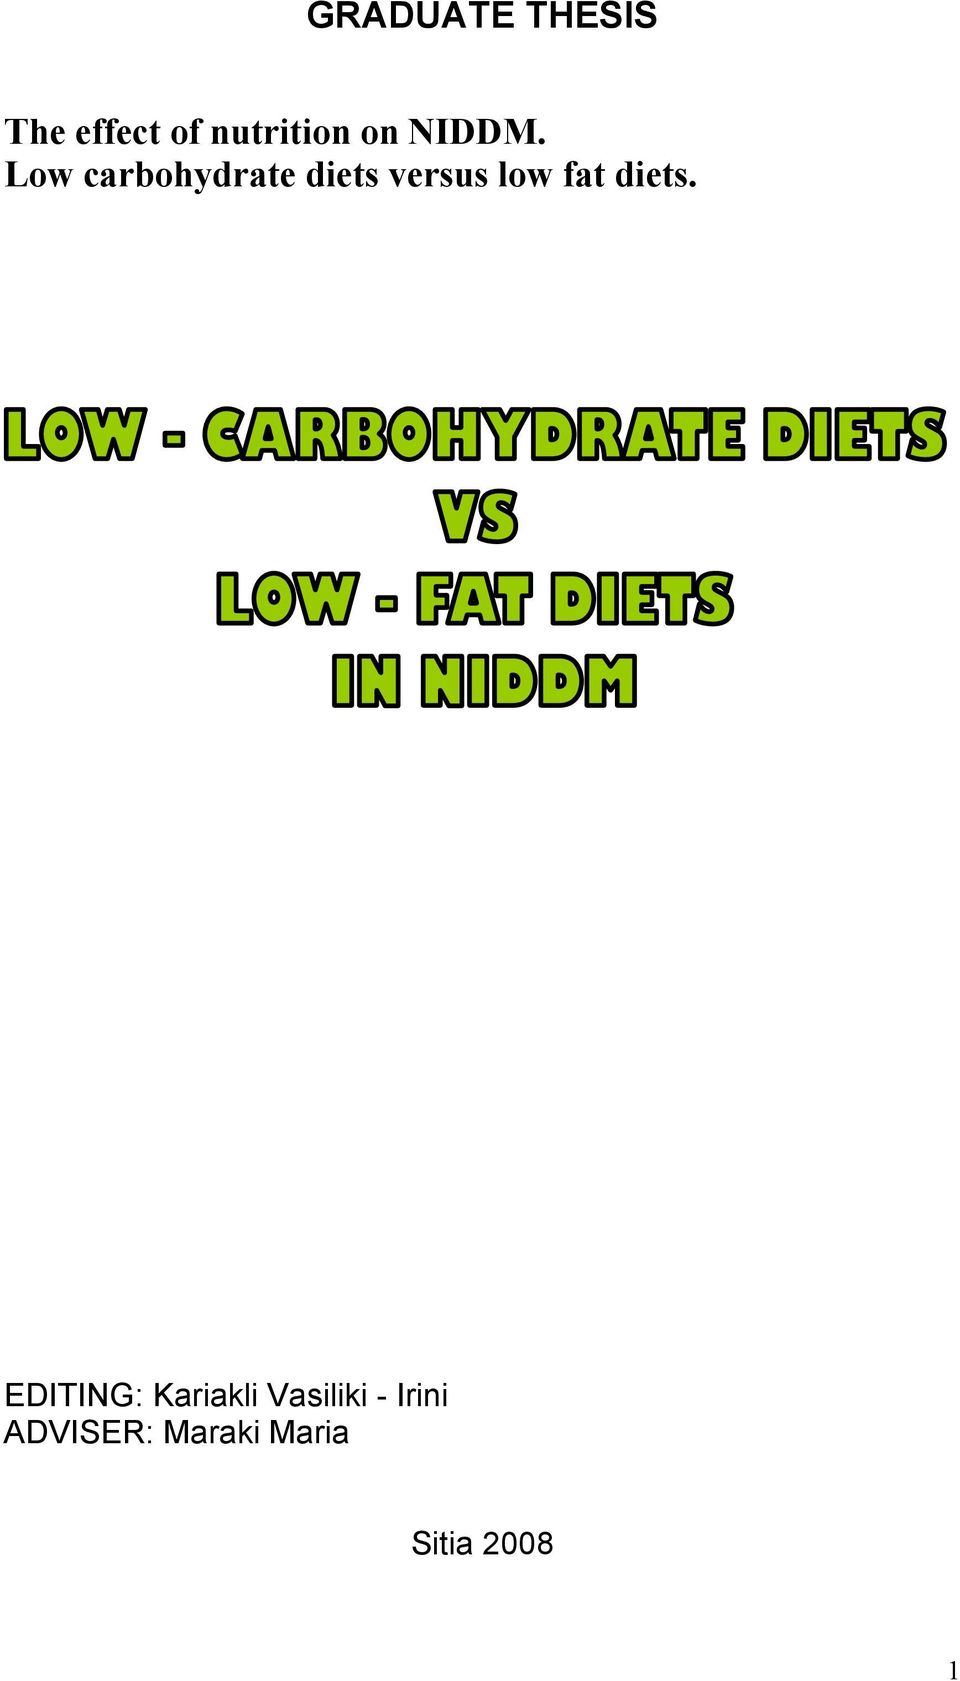 Low carbohydrate diets versus low fat